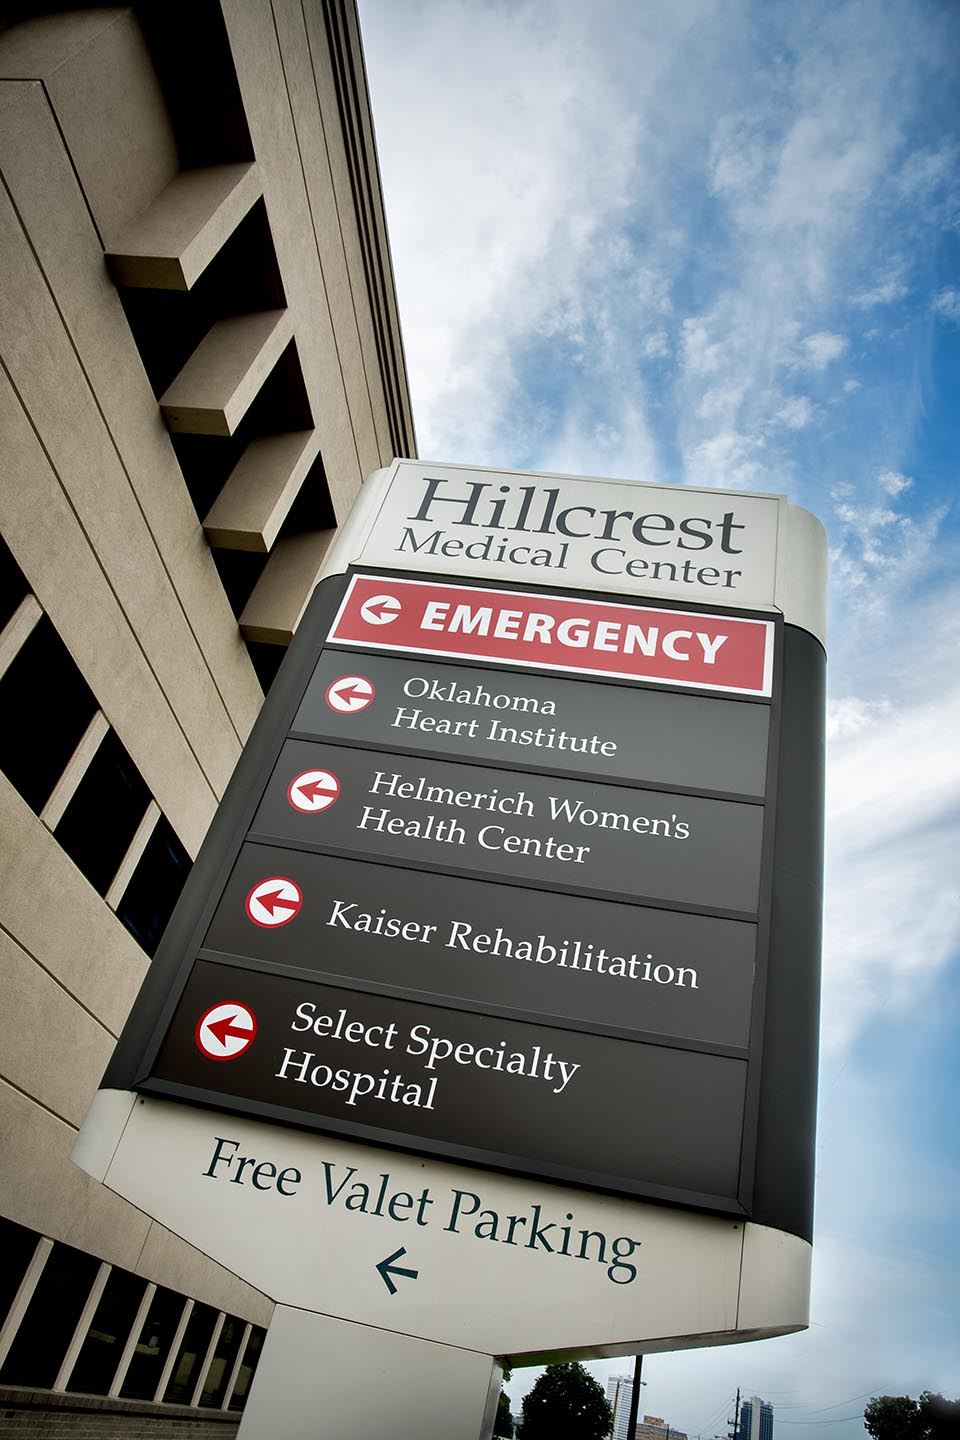 Hillcrest Medical Center | Ardent Health Services